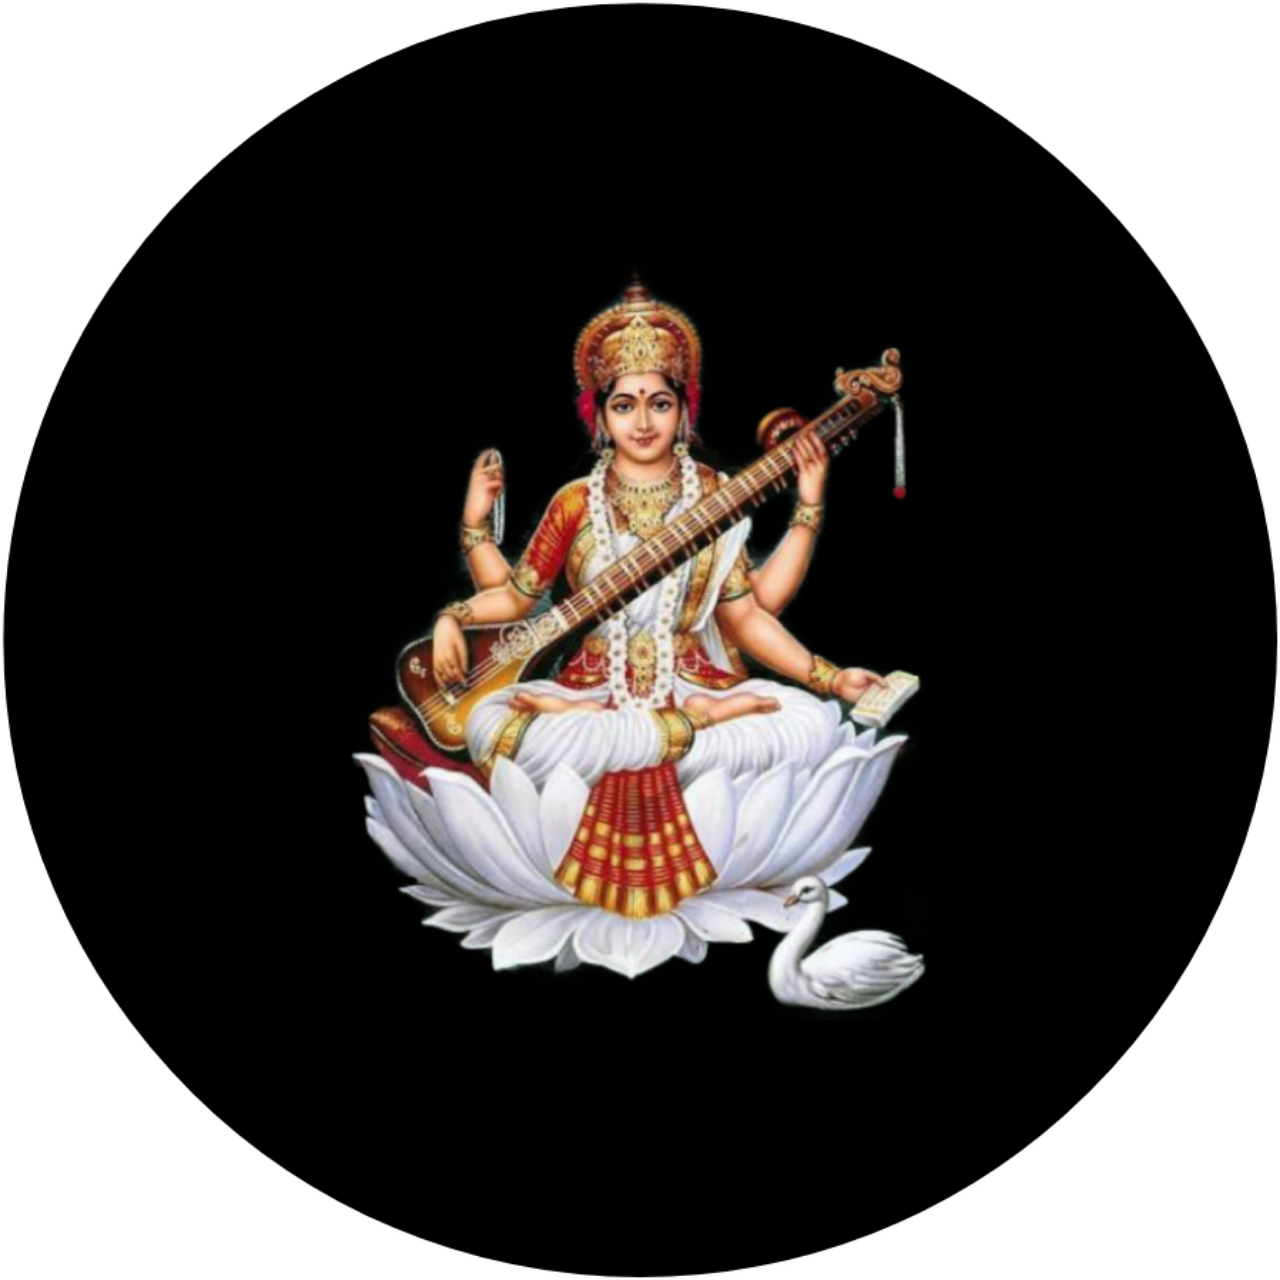 WhatsApp DP images download